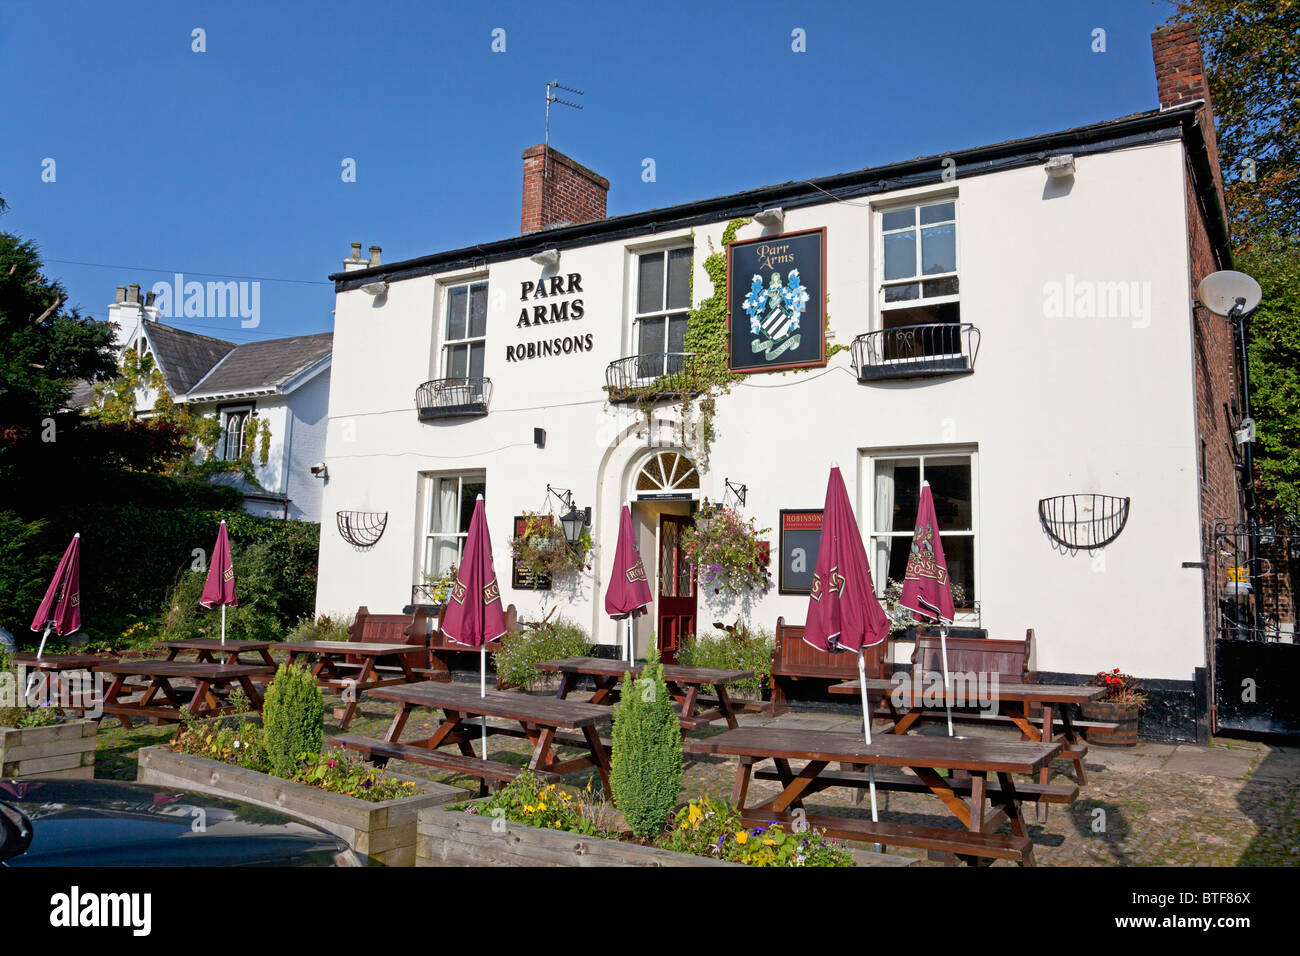 The Parr Arms pub at Grappenhall, Cheshire - Stock Image